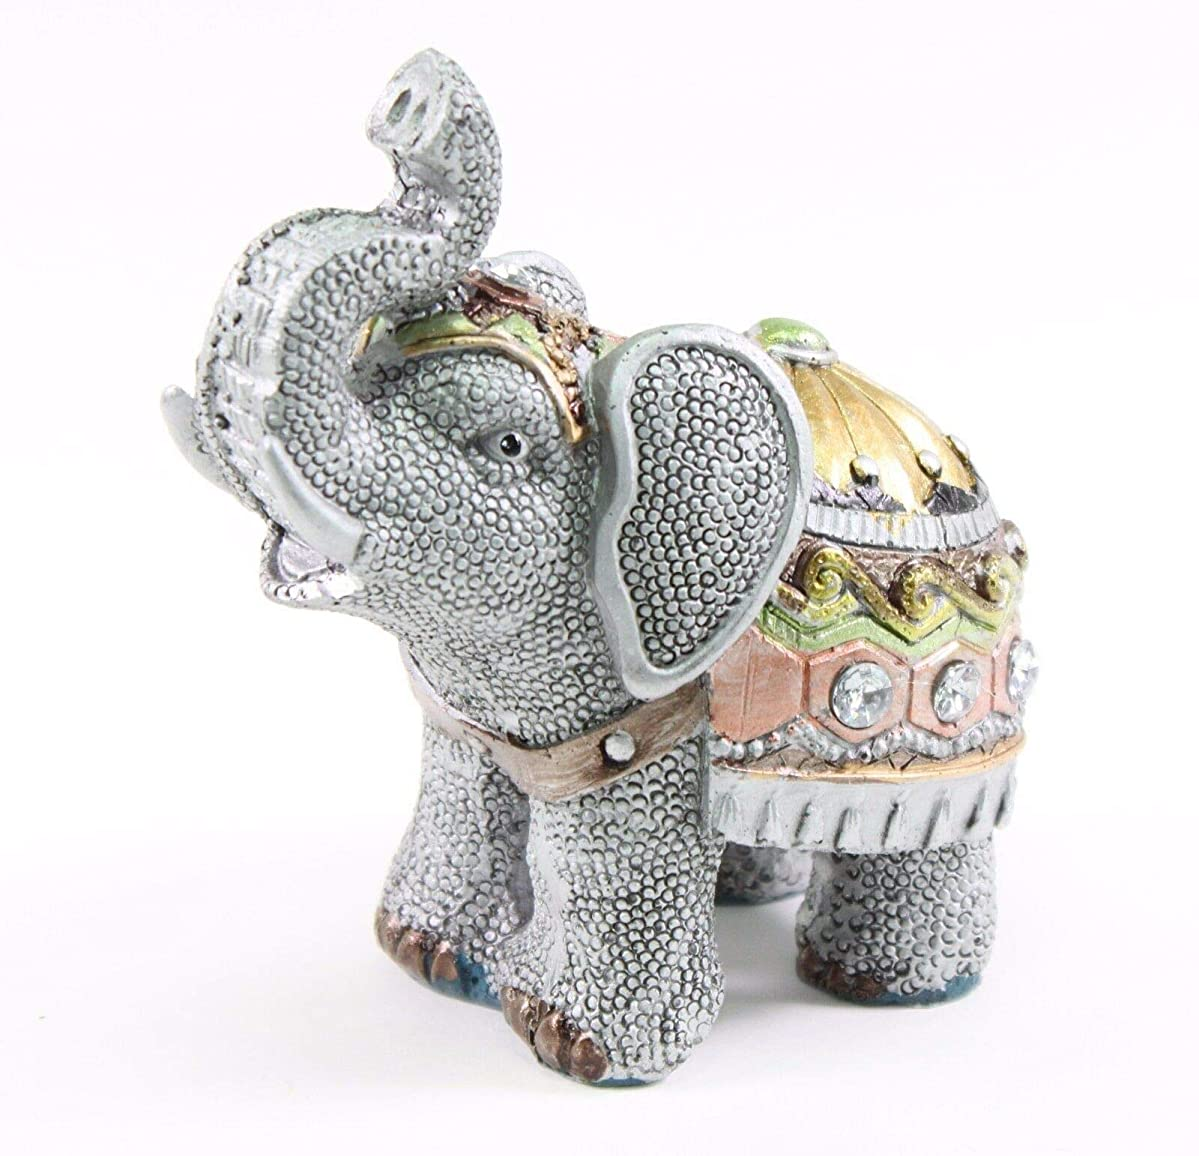 Feng Shui Elephant Trunk Statue Lucky Figurine Gift Home Decor Gray 4.5''